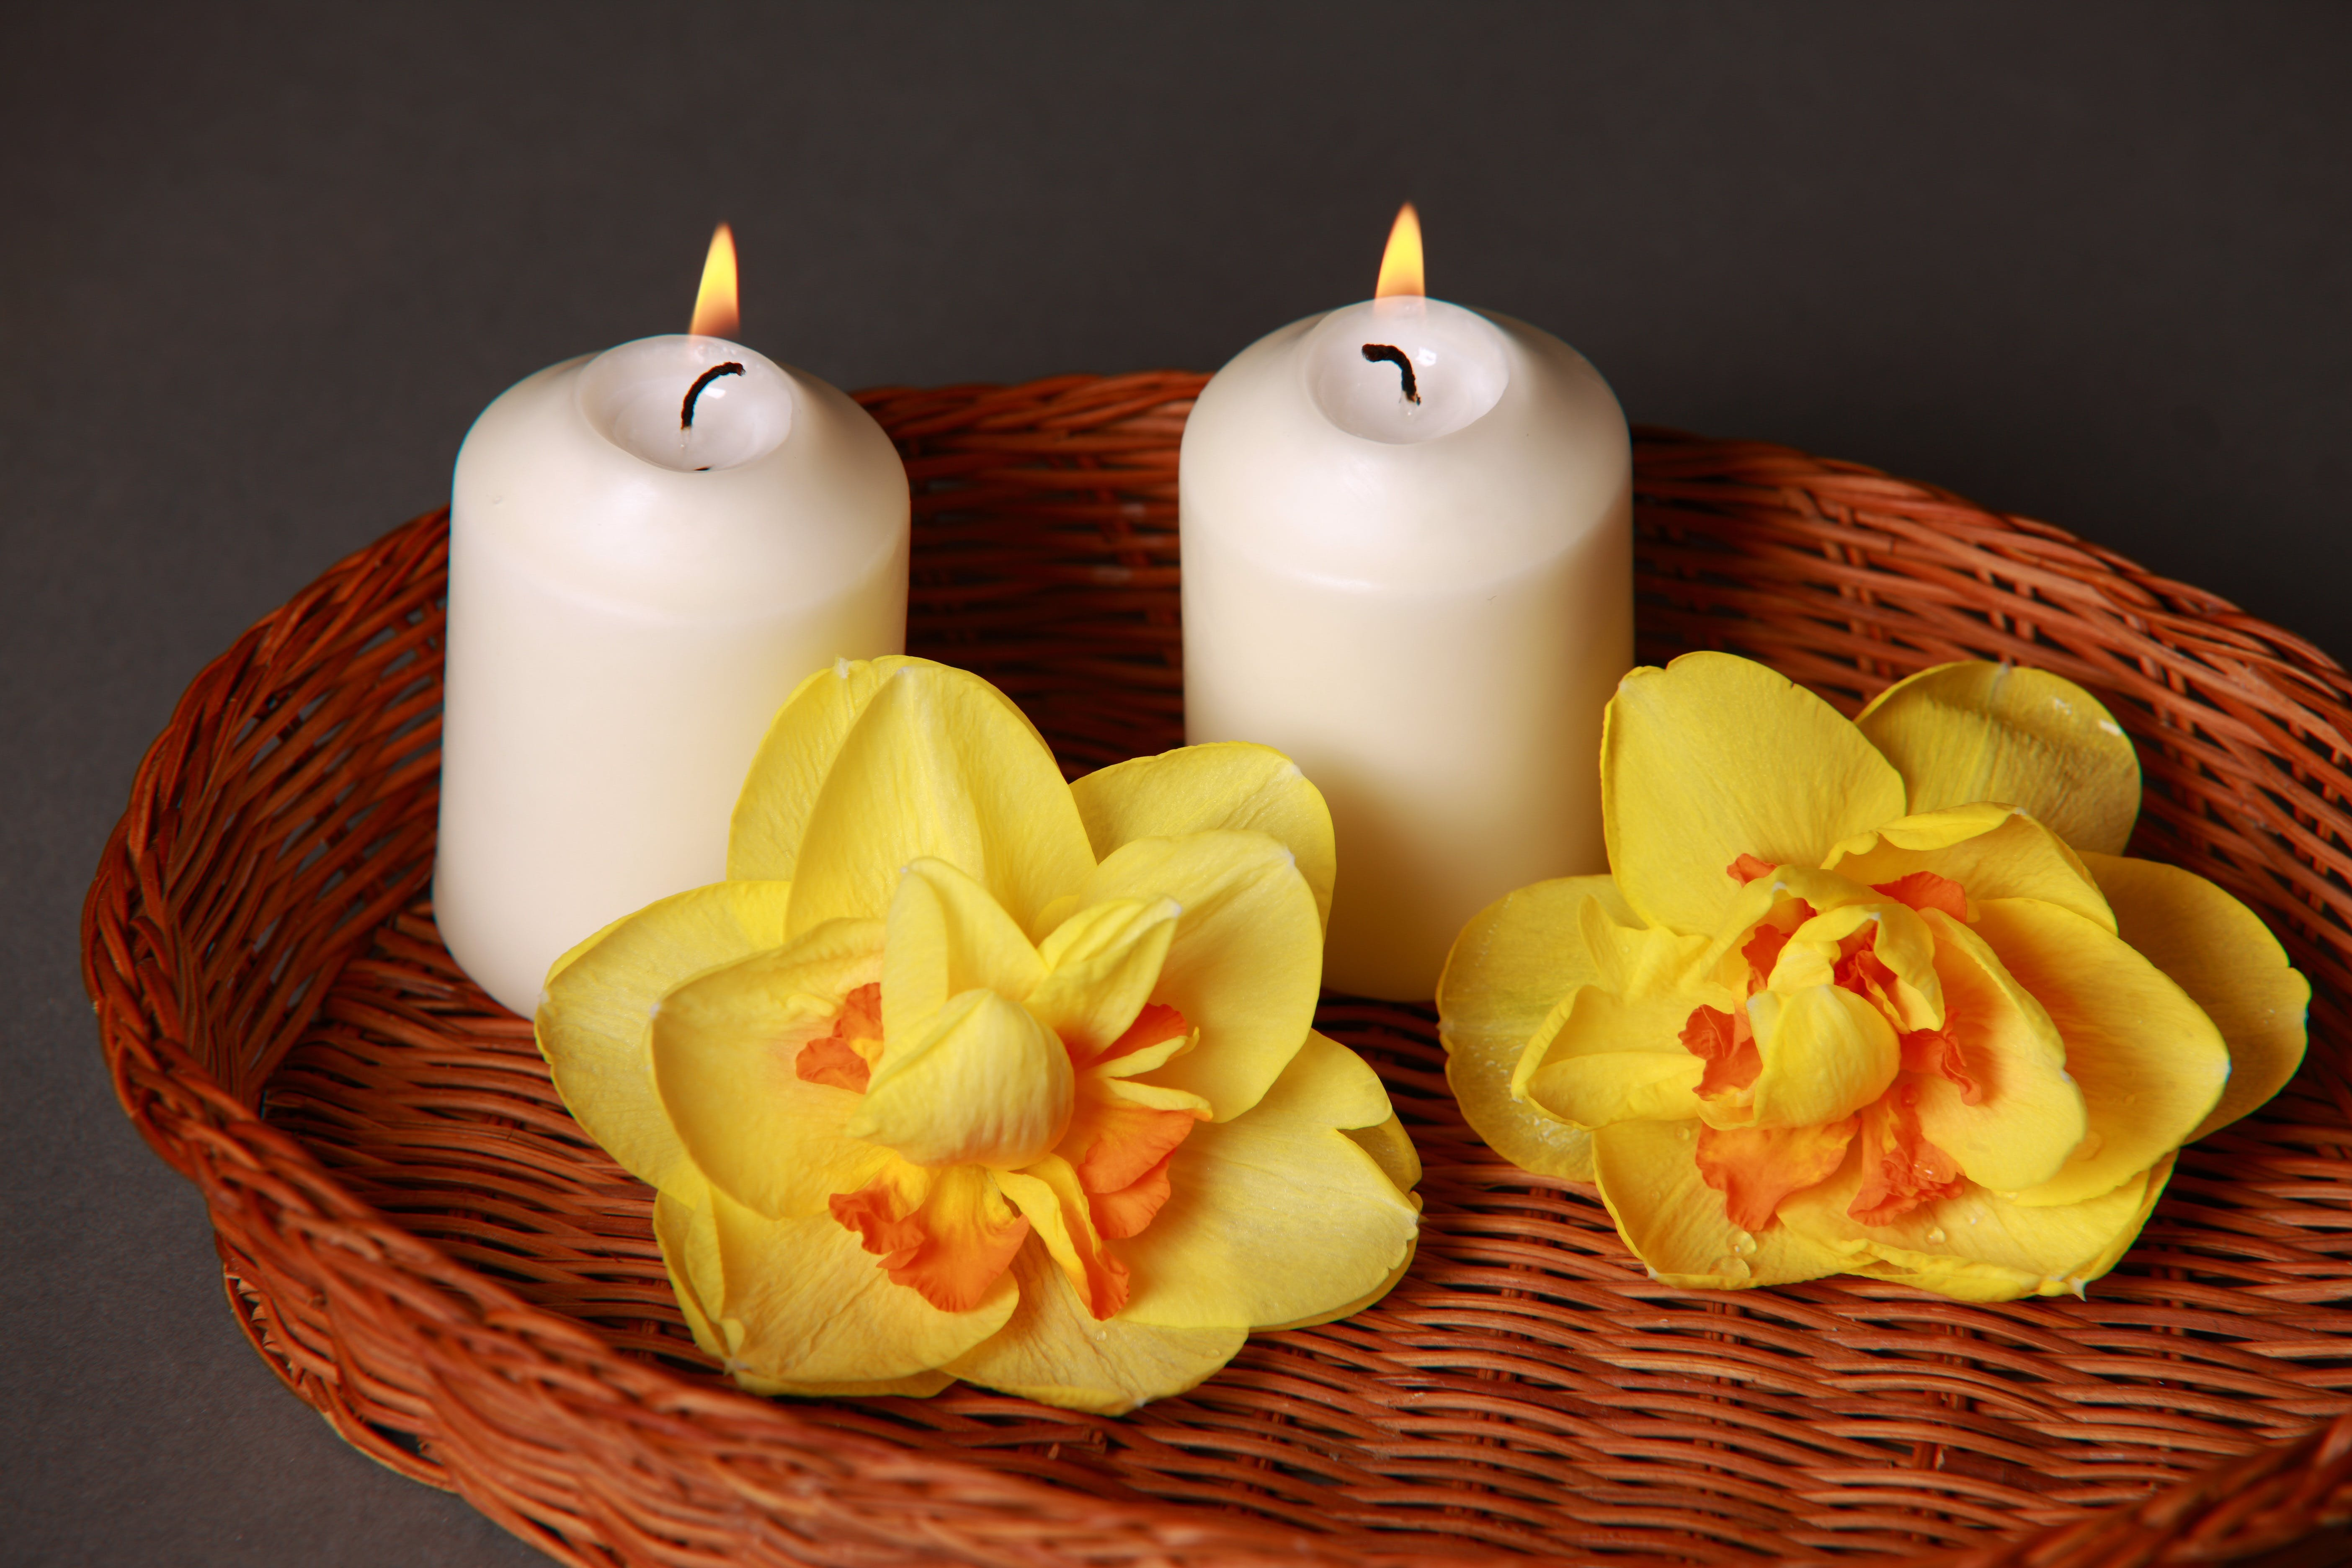 Lighted White Candles Near Yellow Petaled Flowers